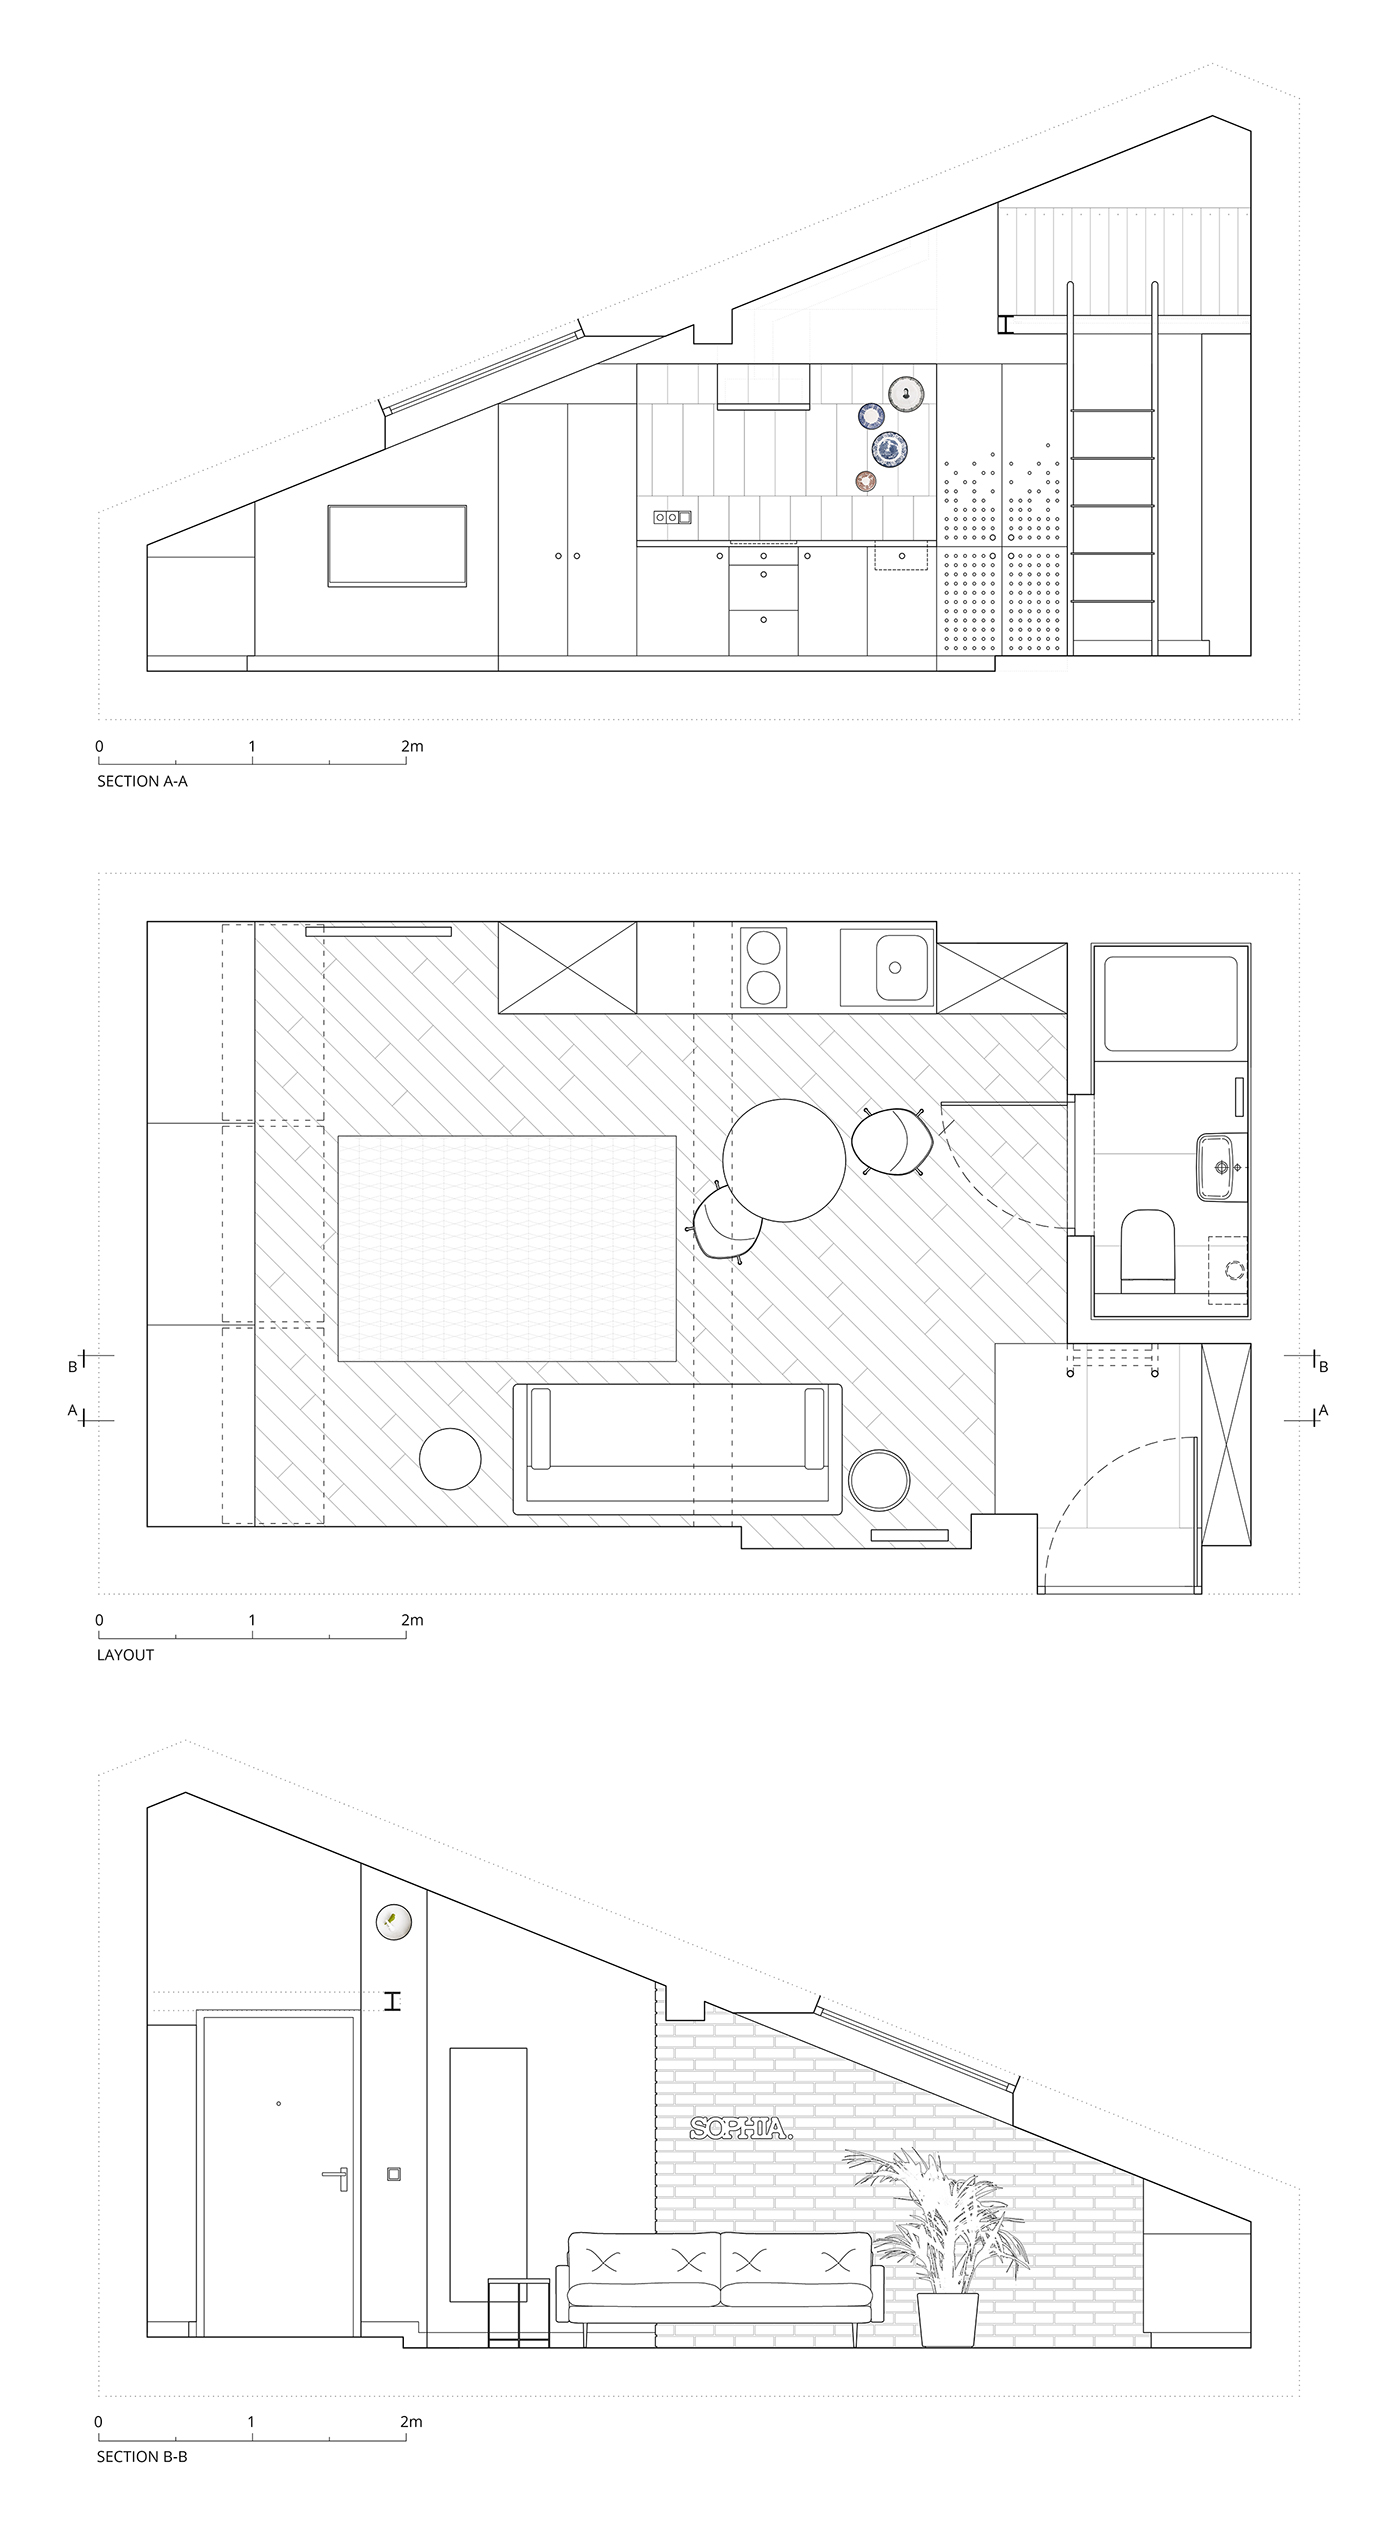 Small Apartment With Loft Floor Plan - 3 fabulous apartment designs with lofted bedrooms